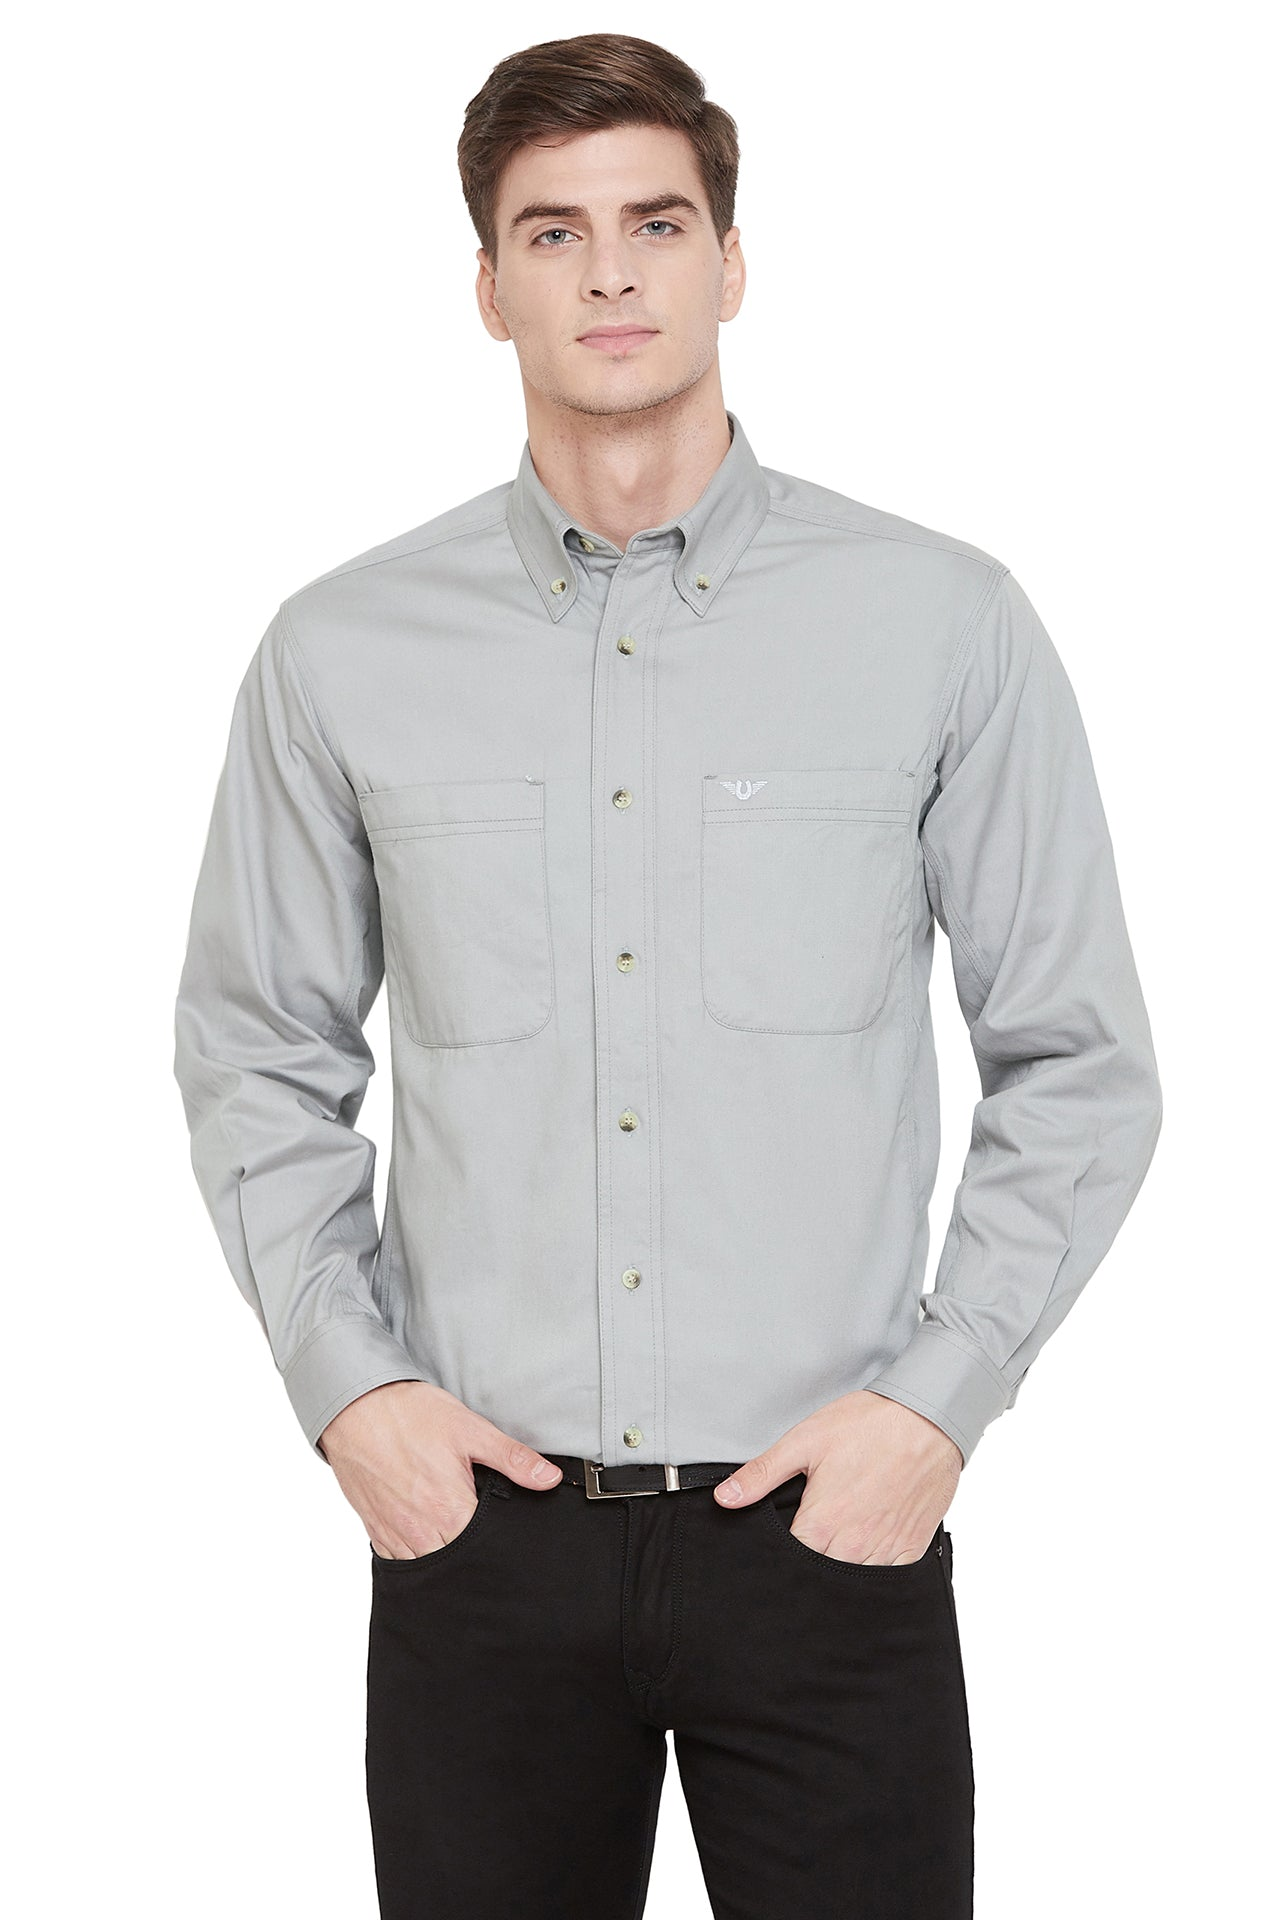 TuffRider Men's Voltage Work Shirt - Breeches.com